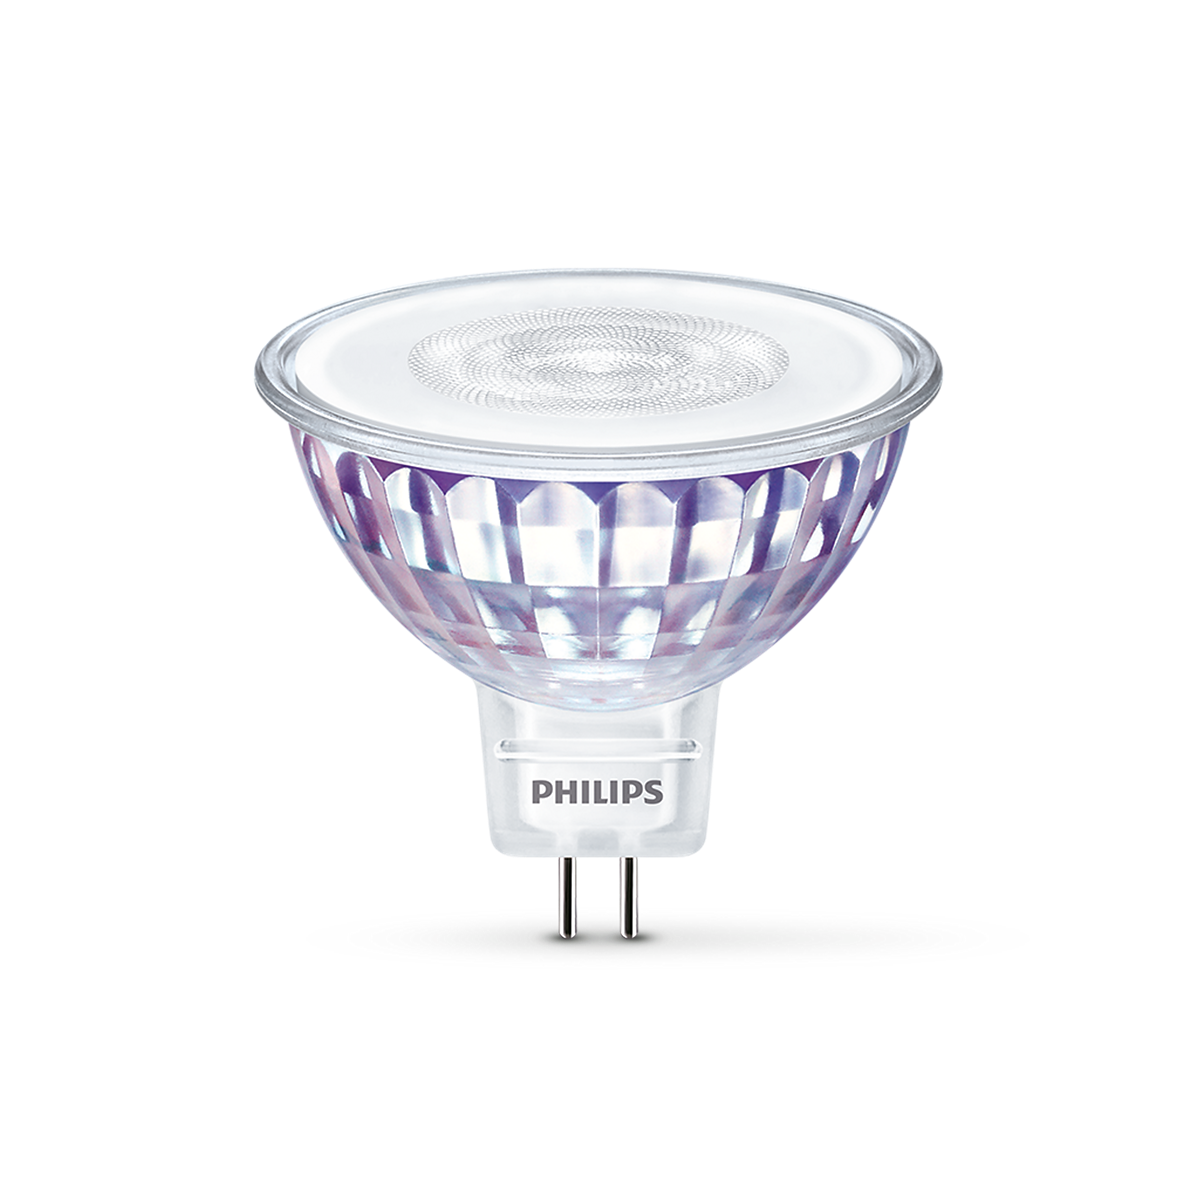 Master Value Ledspot Lv Led 聚光燈 Philips